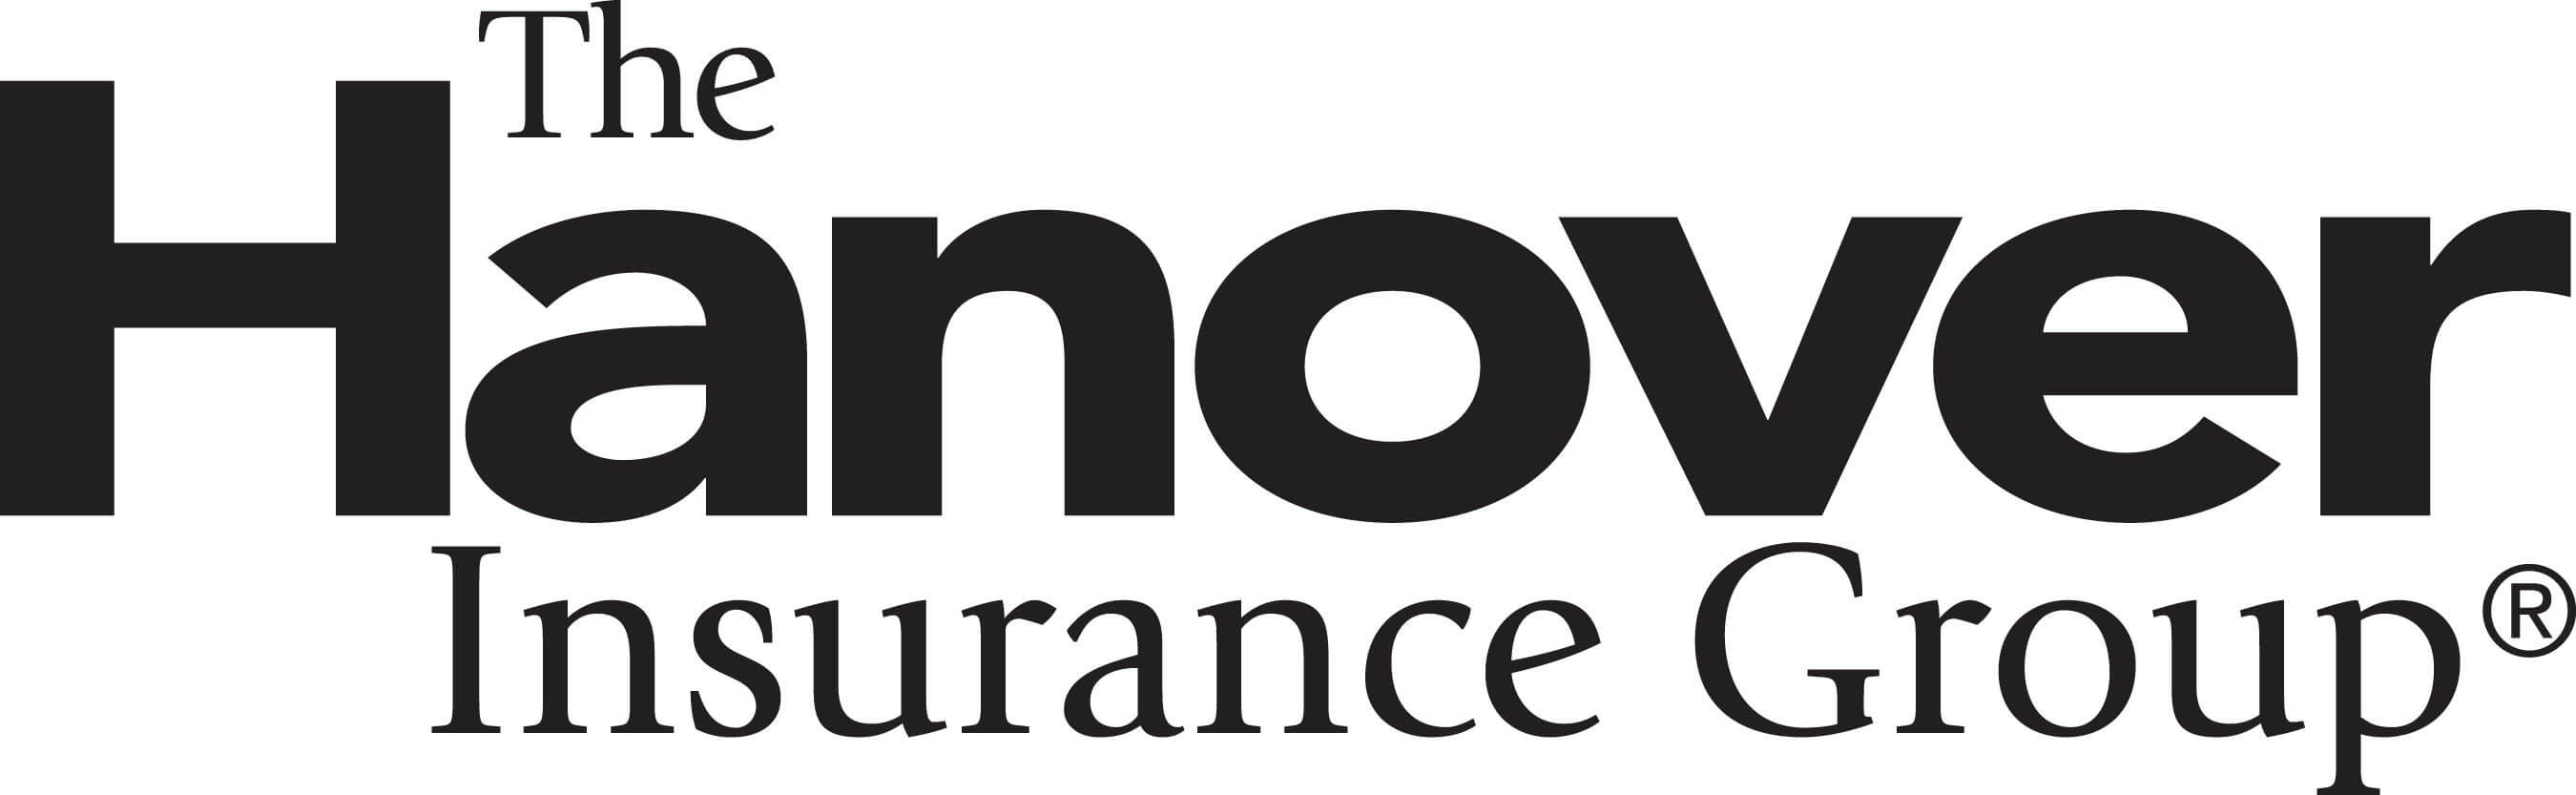 The Hanover enhances growth focus with expanded specialty